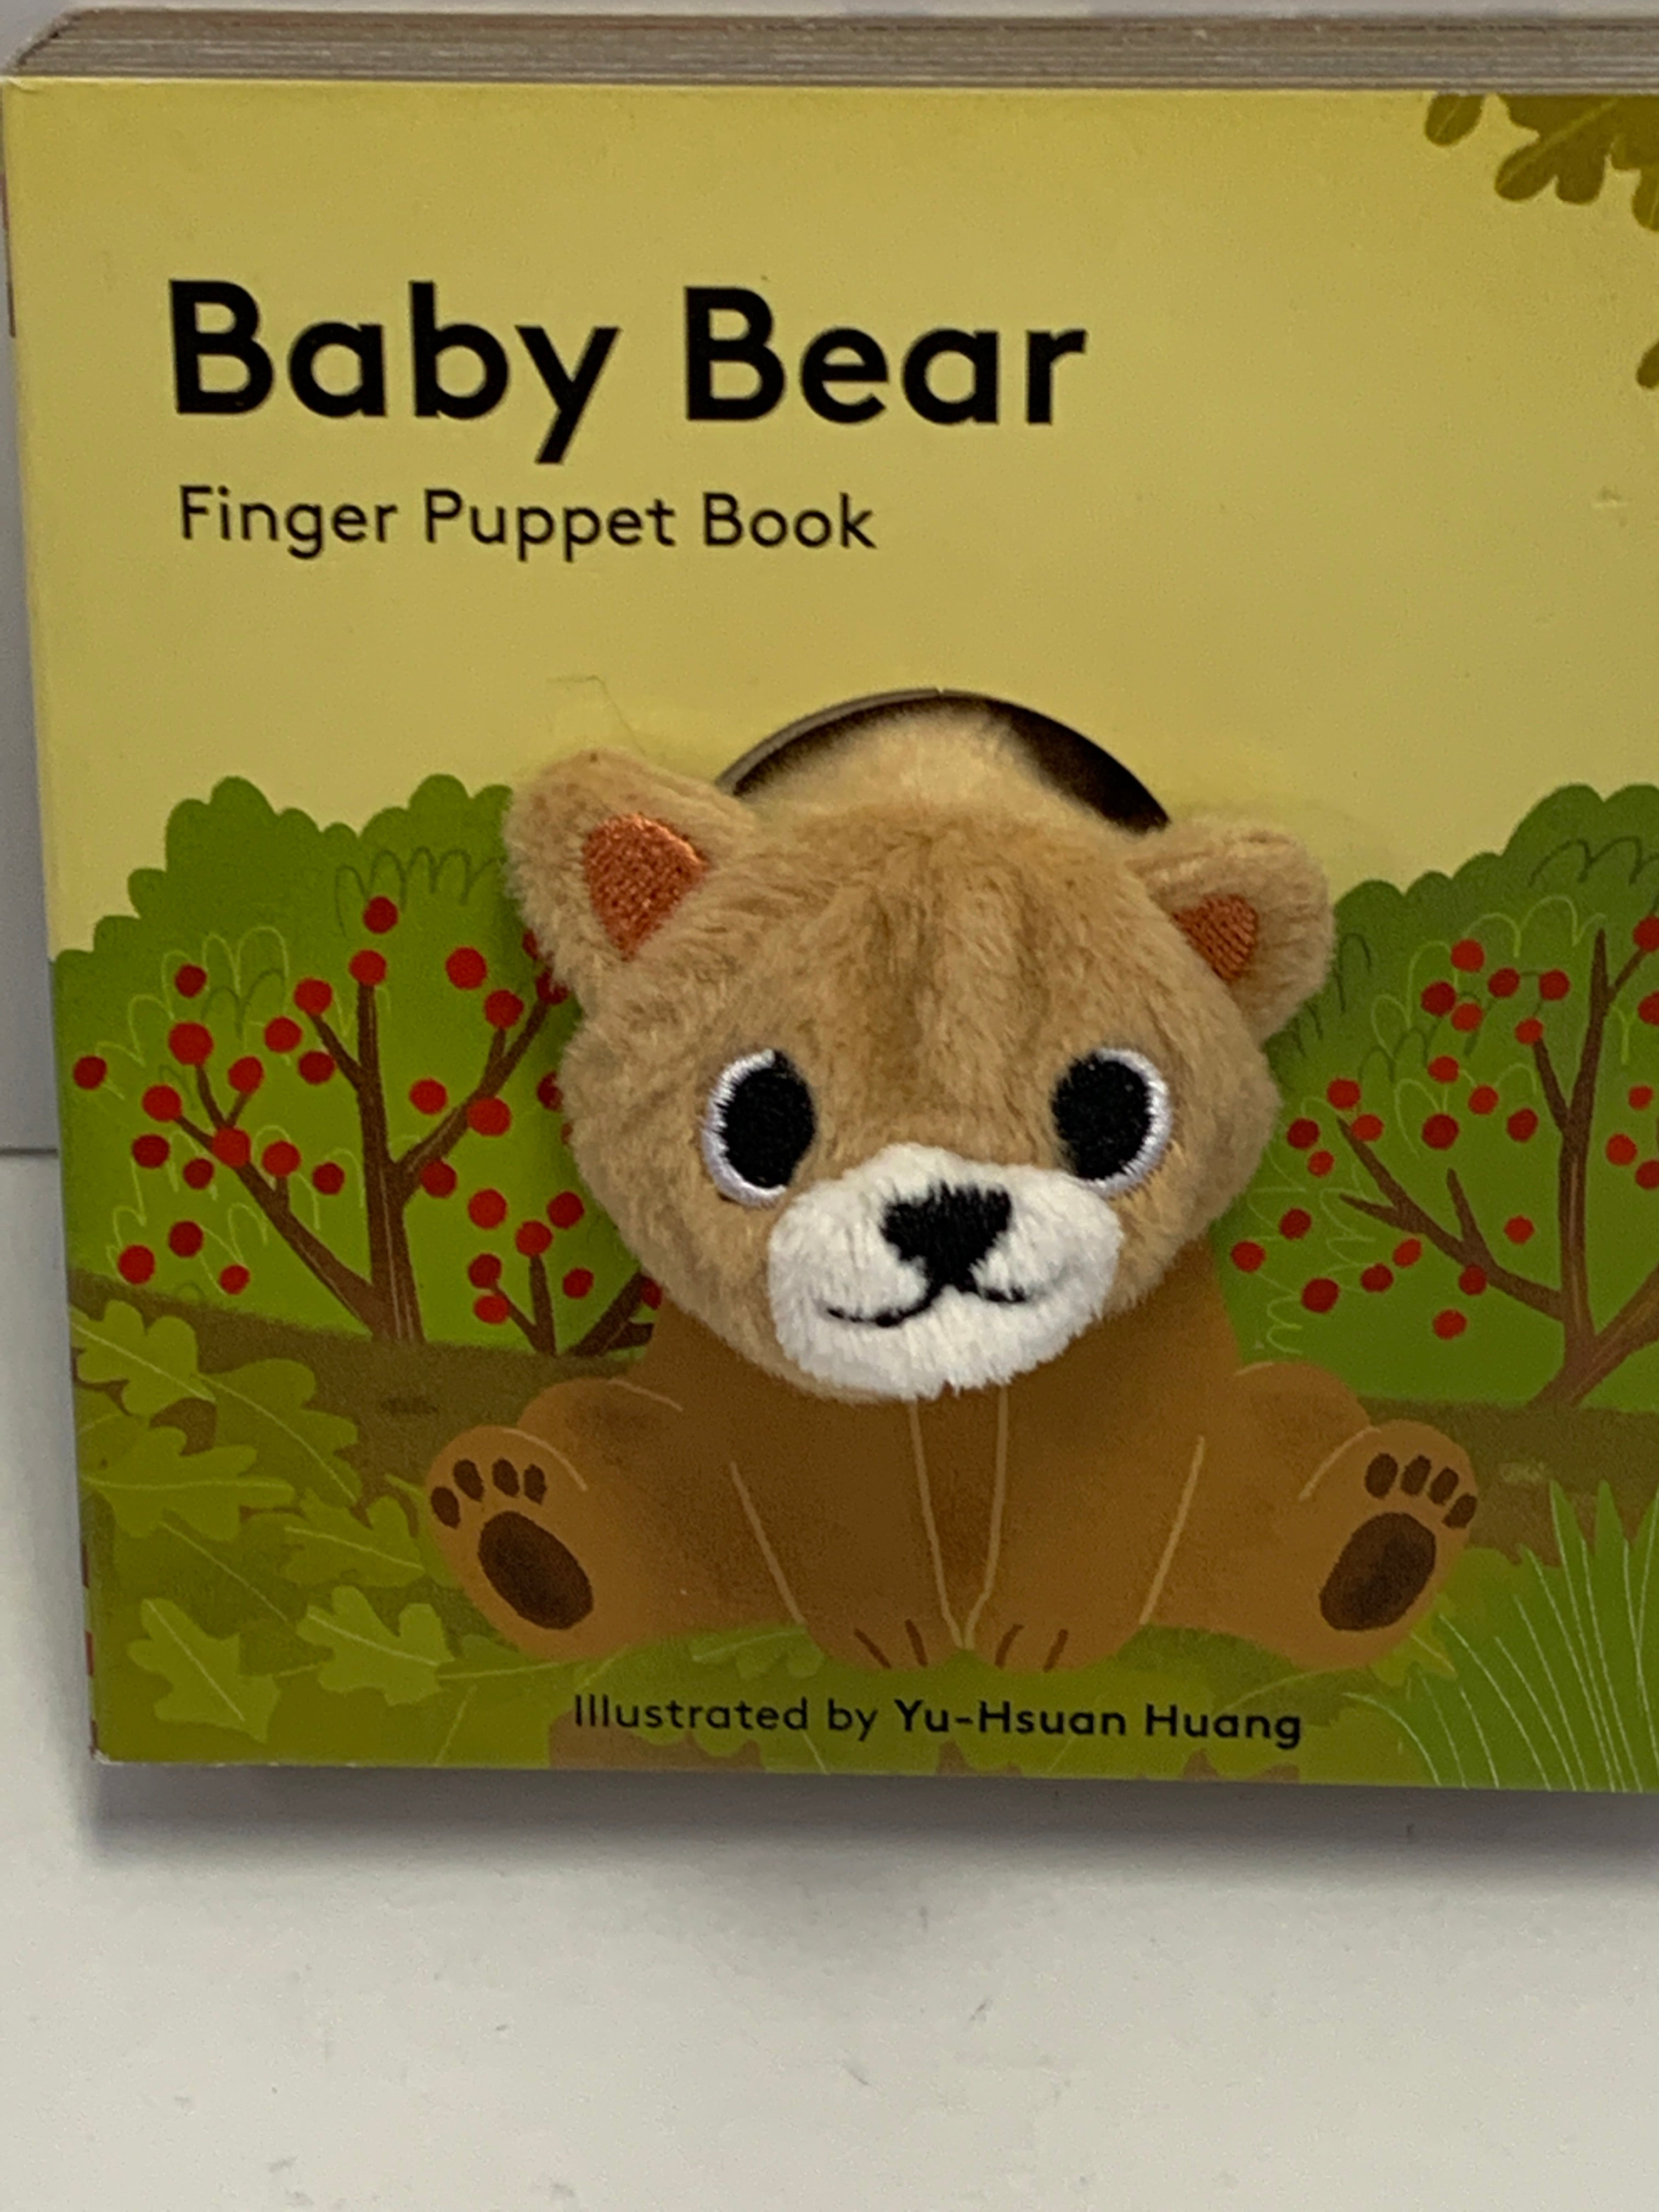 Finger Puppet Book - Baby Bear